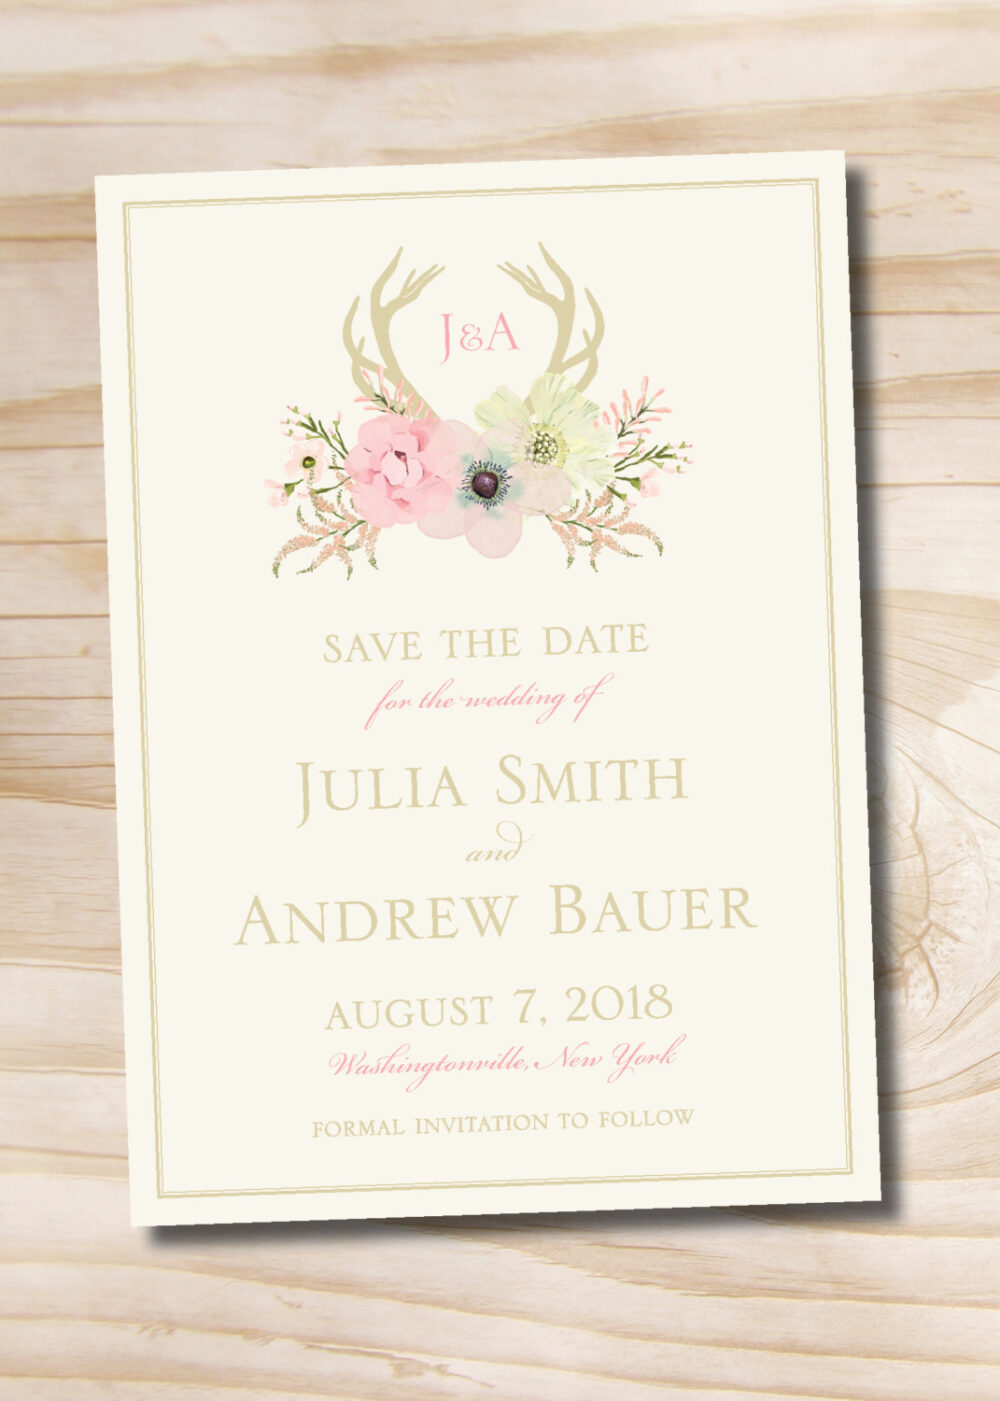 Rustic Watercolor Floral Antlers Save The Date - Printable Save Date Printable Digital File Or Printed Invitations